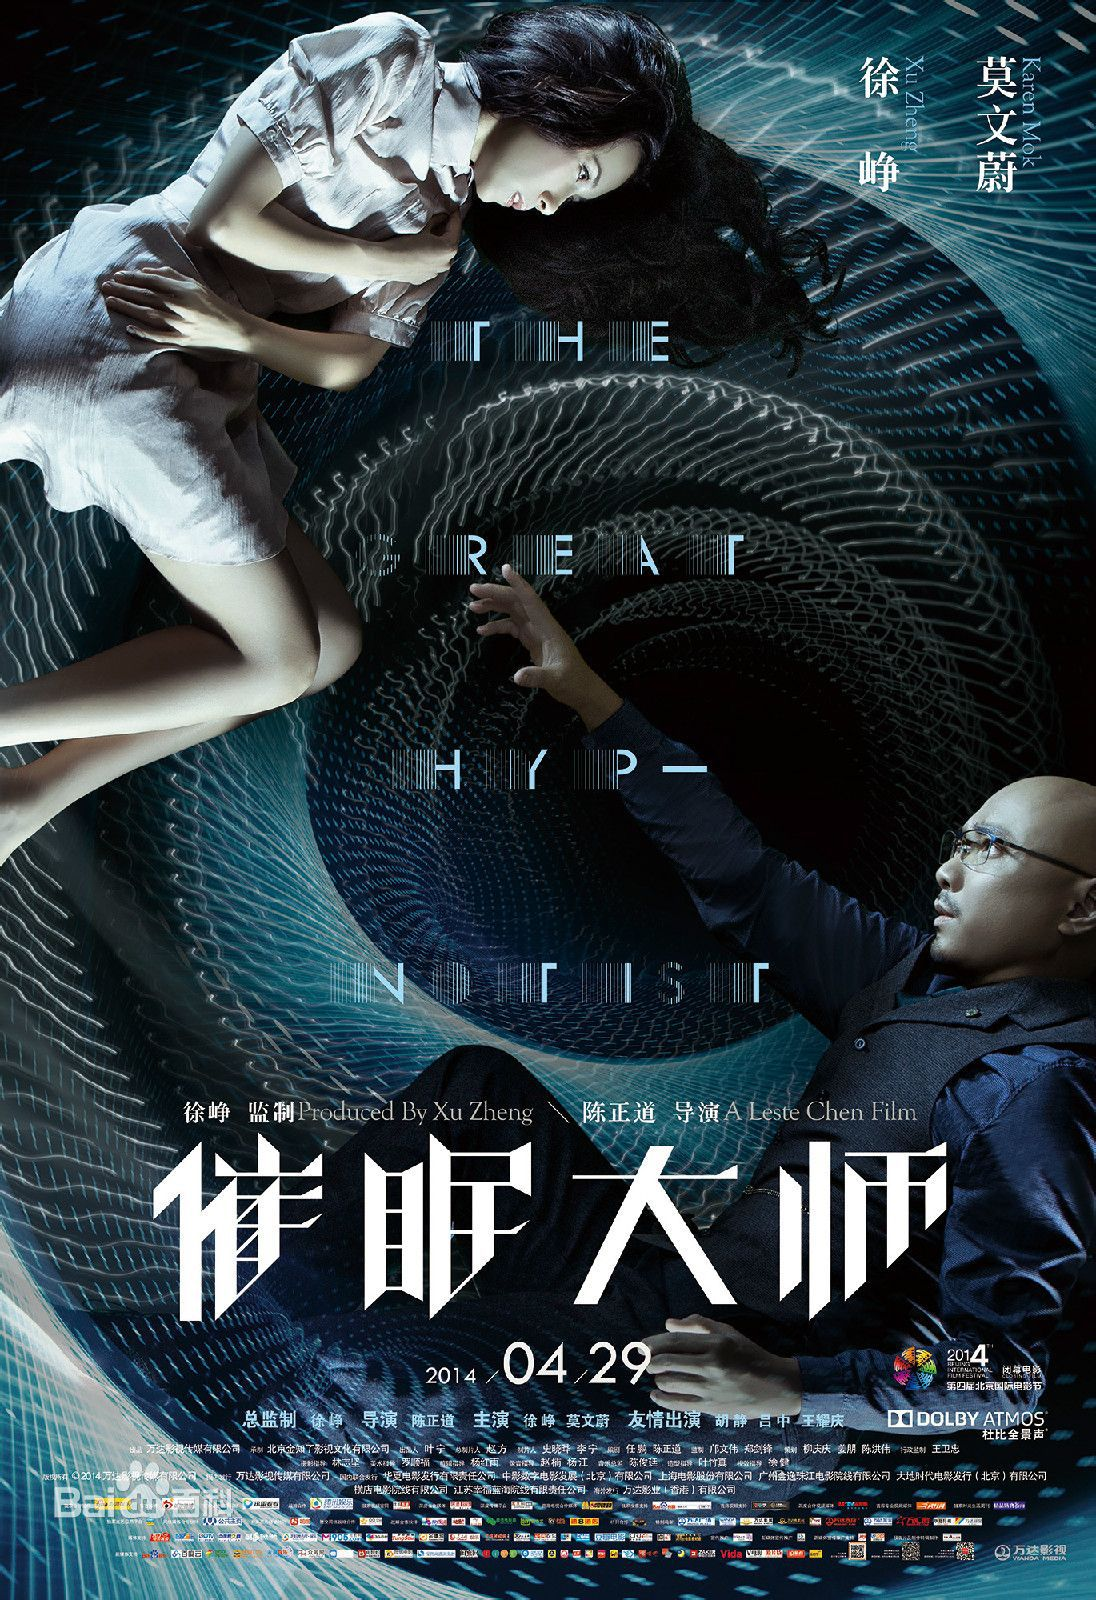 The Great Hypnotist [2014 China Movie] Drama, Mystery, Thriller